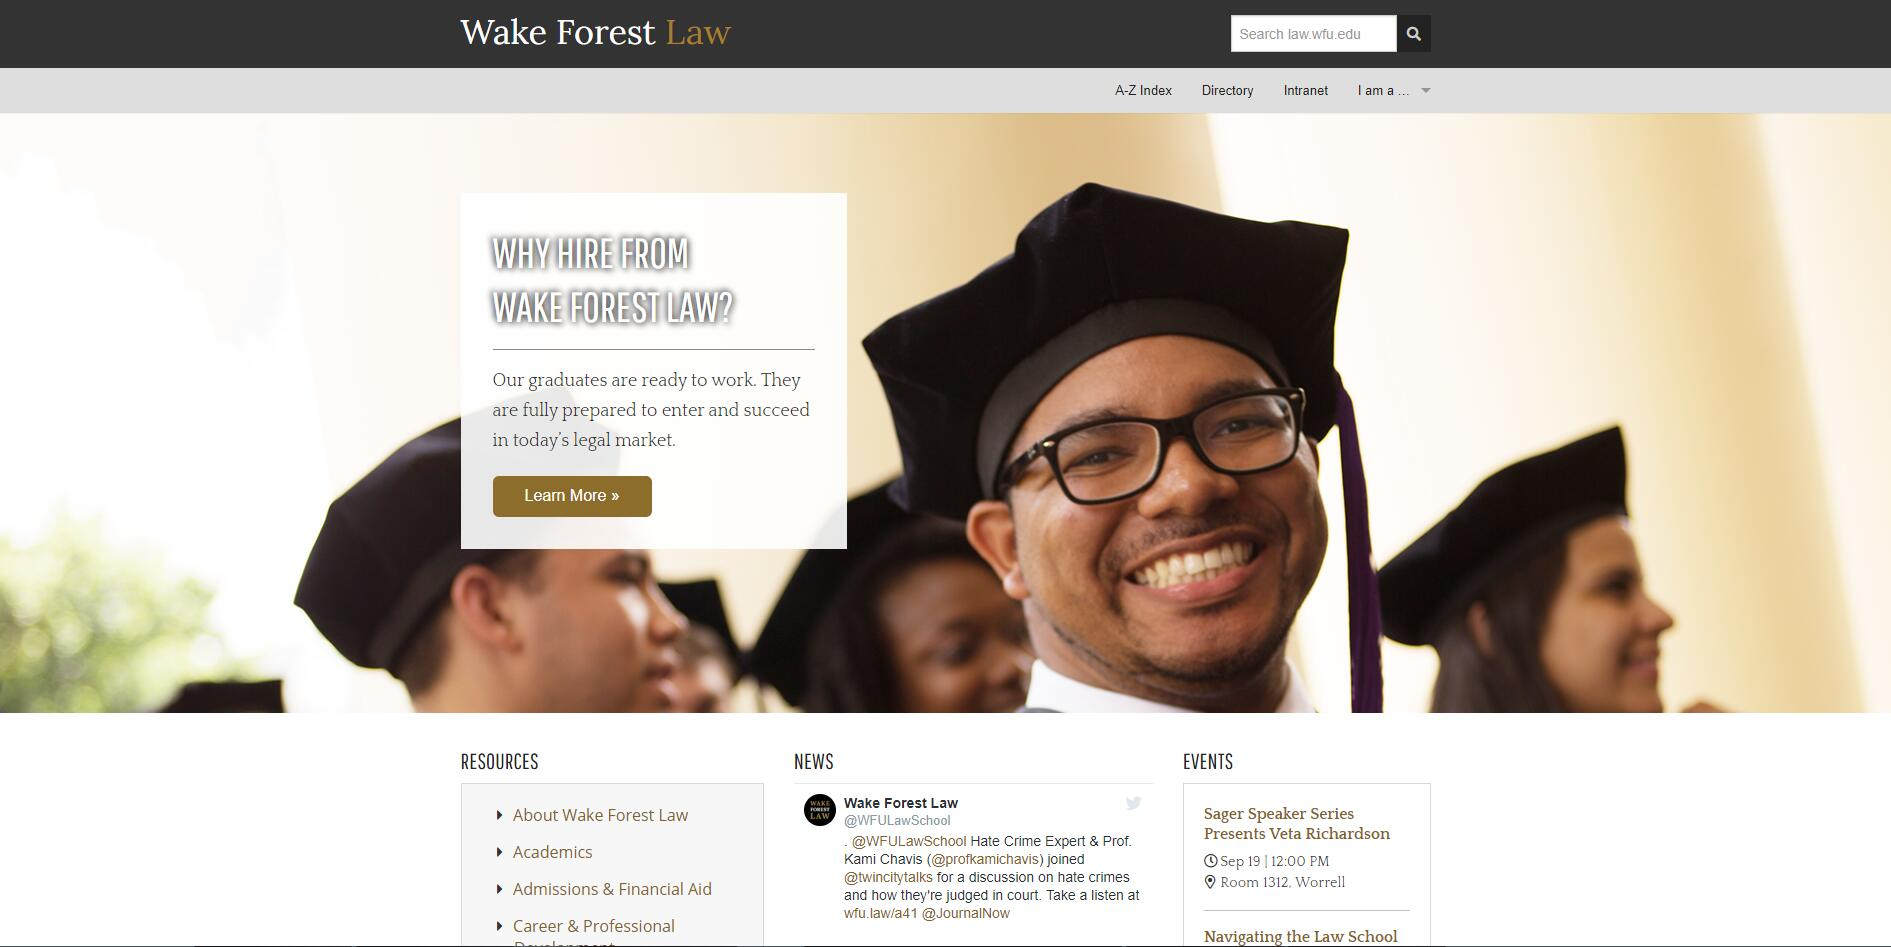 The School of Law at Wake Forest University